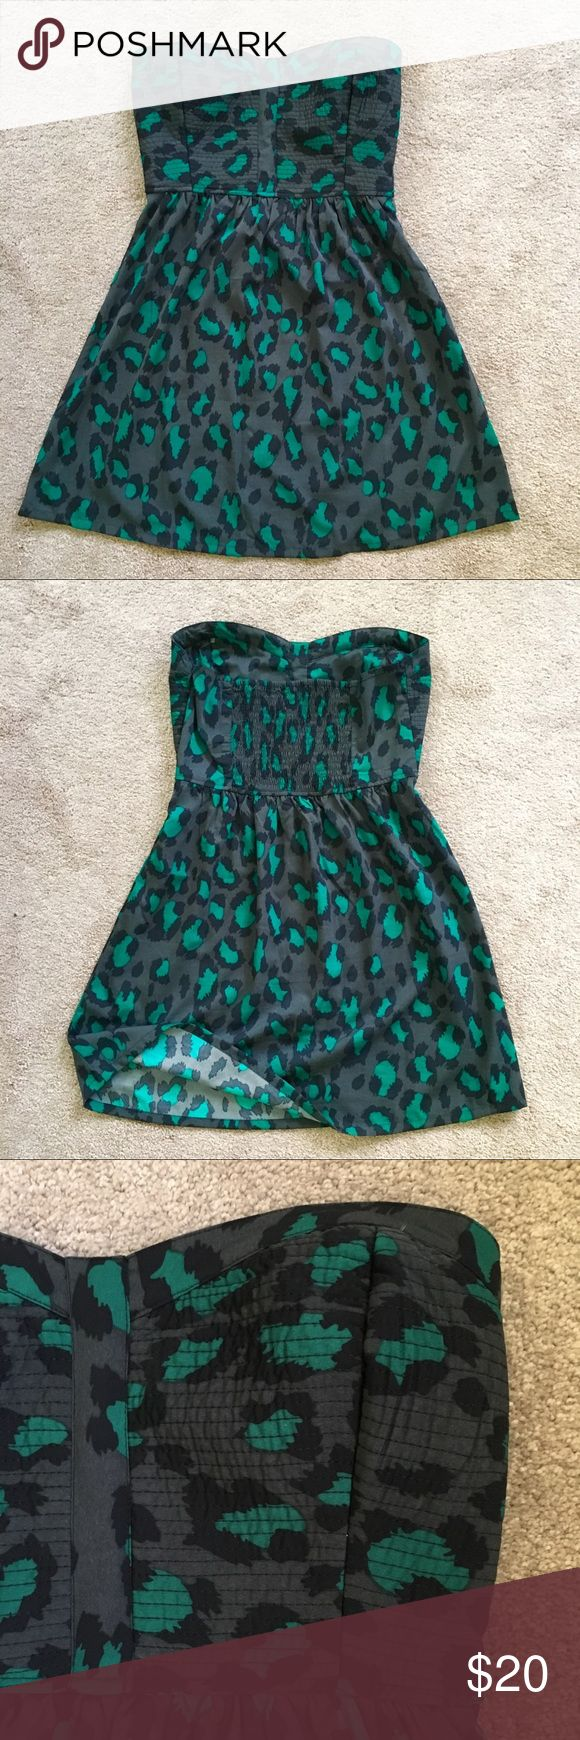 Hurley Animal Print Strapless Dress Fun dress that looks great with heels to go out or flip flops for a beach day. A line shape with length stopping just above the knee. Bust is roomy and has an elastic band at the back for some stretch and comfort. Hurley Dresses Strapless